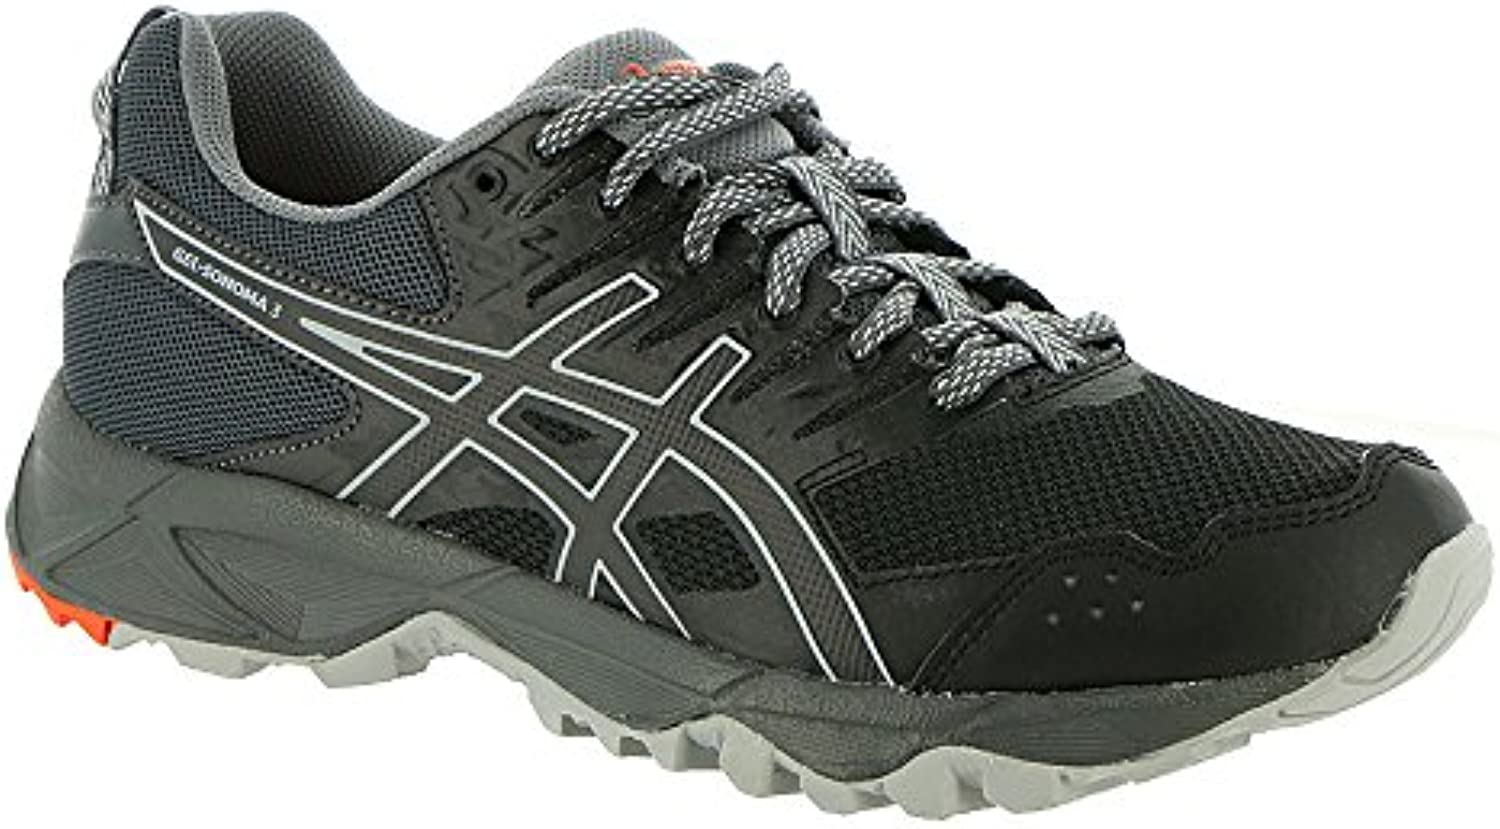 Asics T774N WoHommes 's Gel-Sonoma 3 3 3 Running Shoe, Black/Dark Grey - 10 B(M) USB077NS59Q9Parent 22dc2e